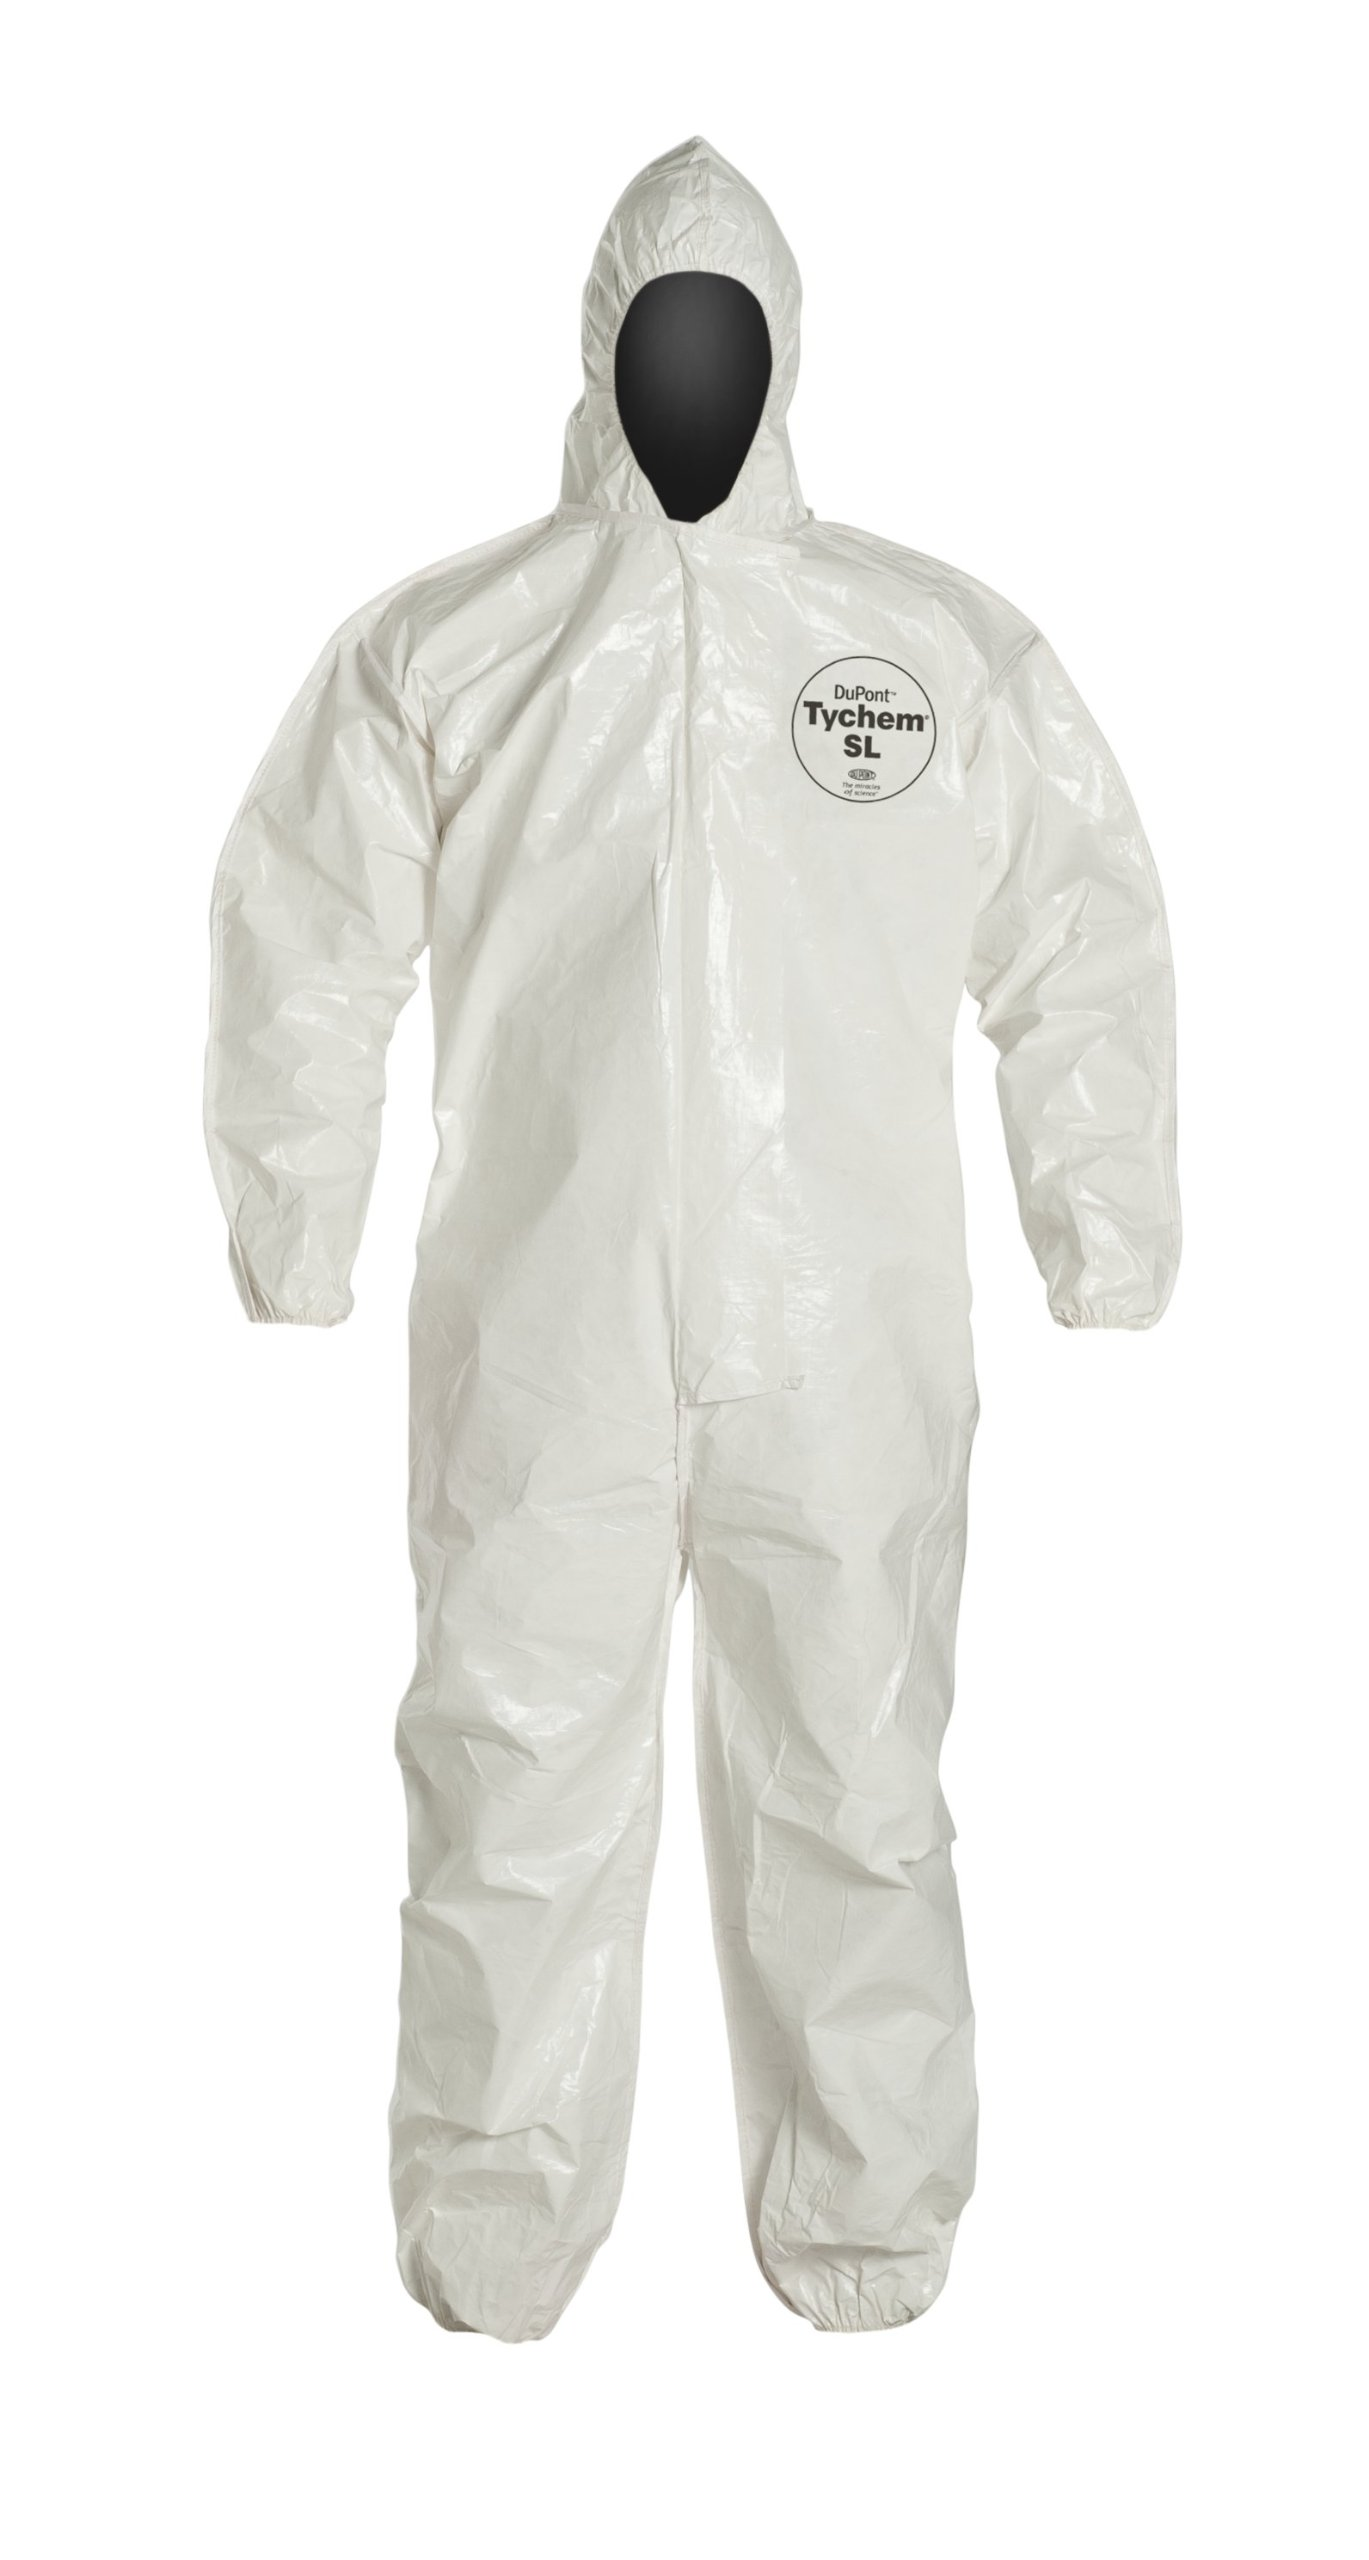 DuPont Tychem 4000 Disposable Chemical Resistant Coverall with Hood, Elastic Cuff and Taped Seams, White, 4X-Large, 6-Pack